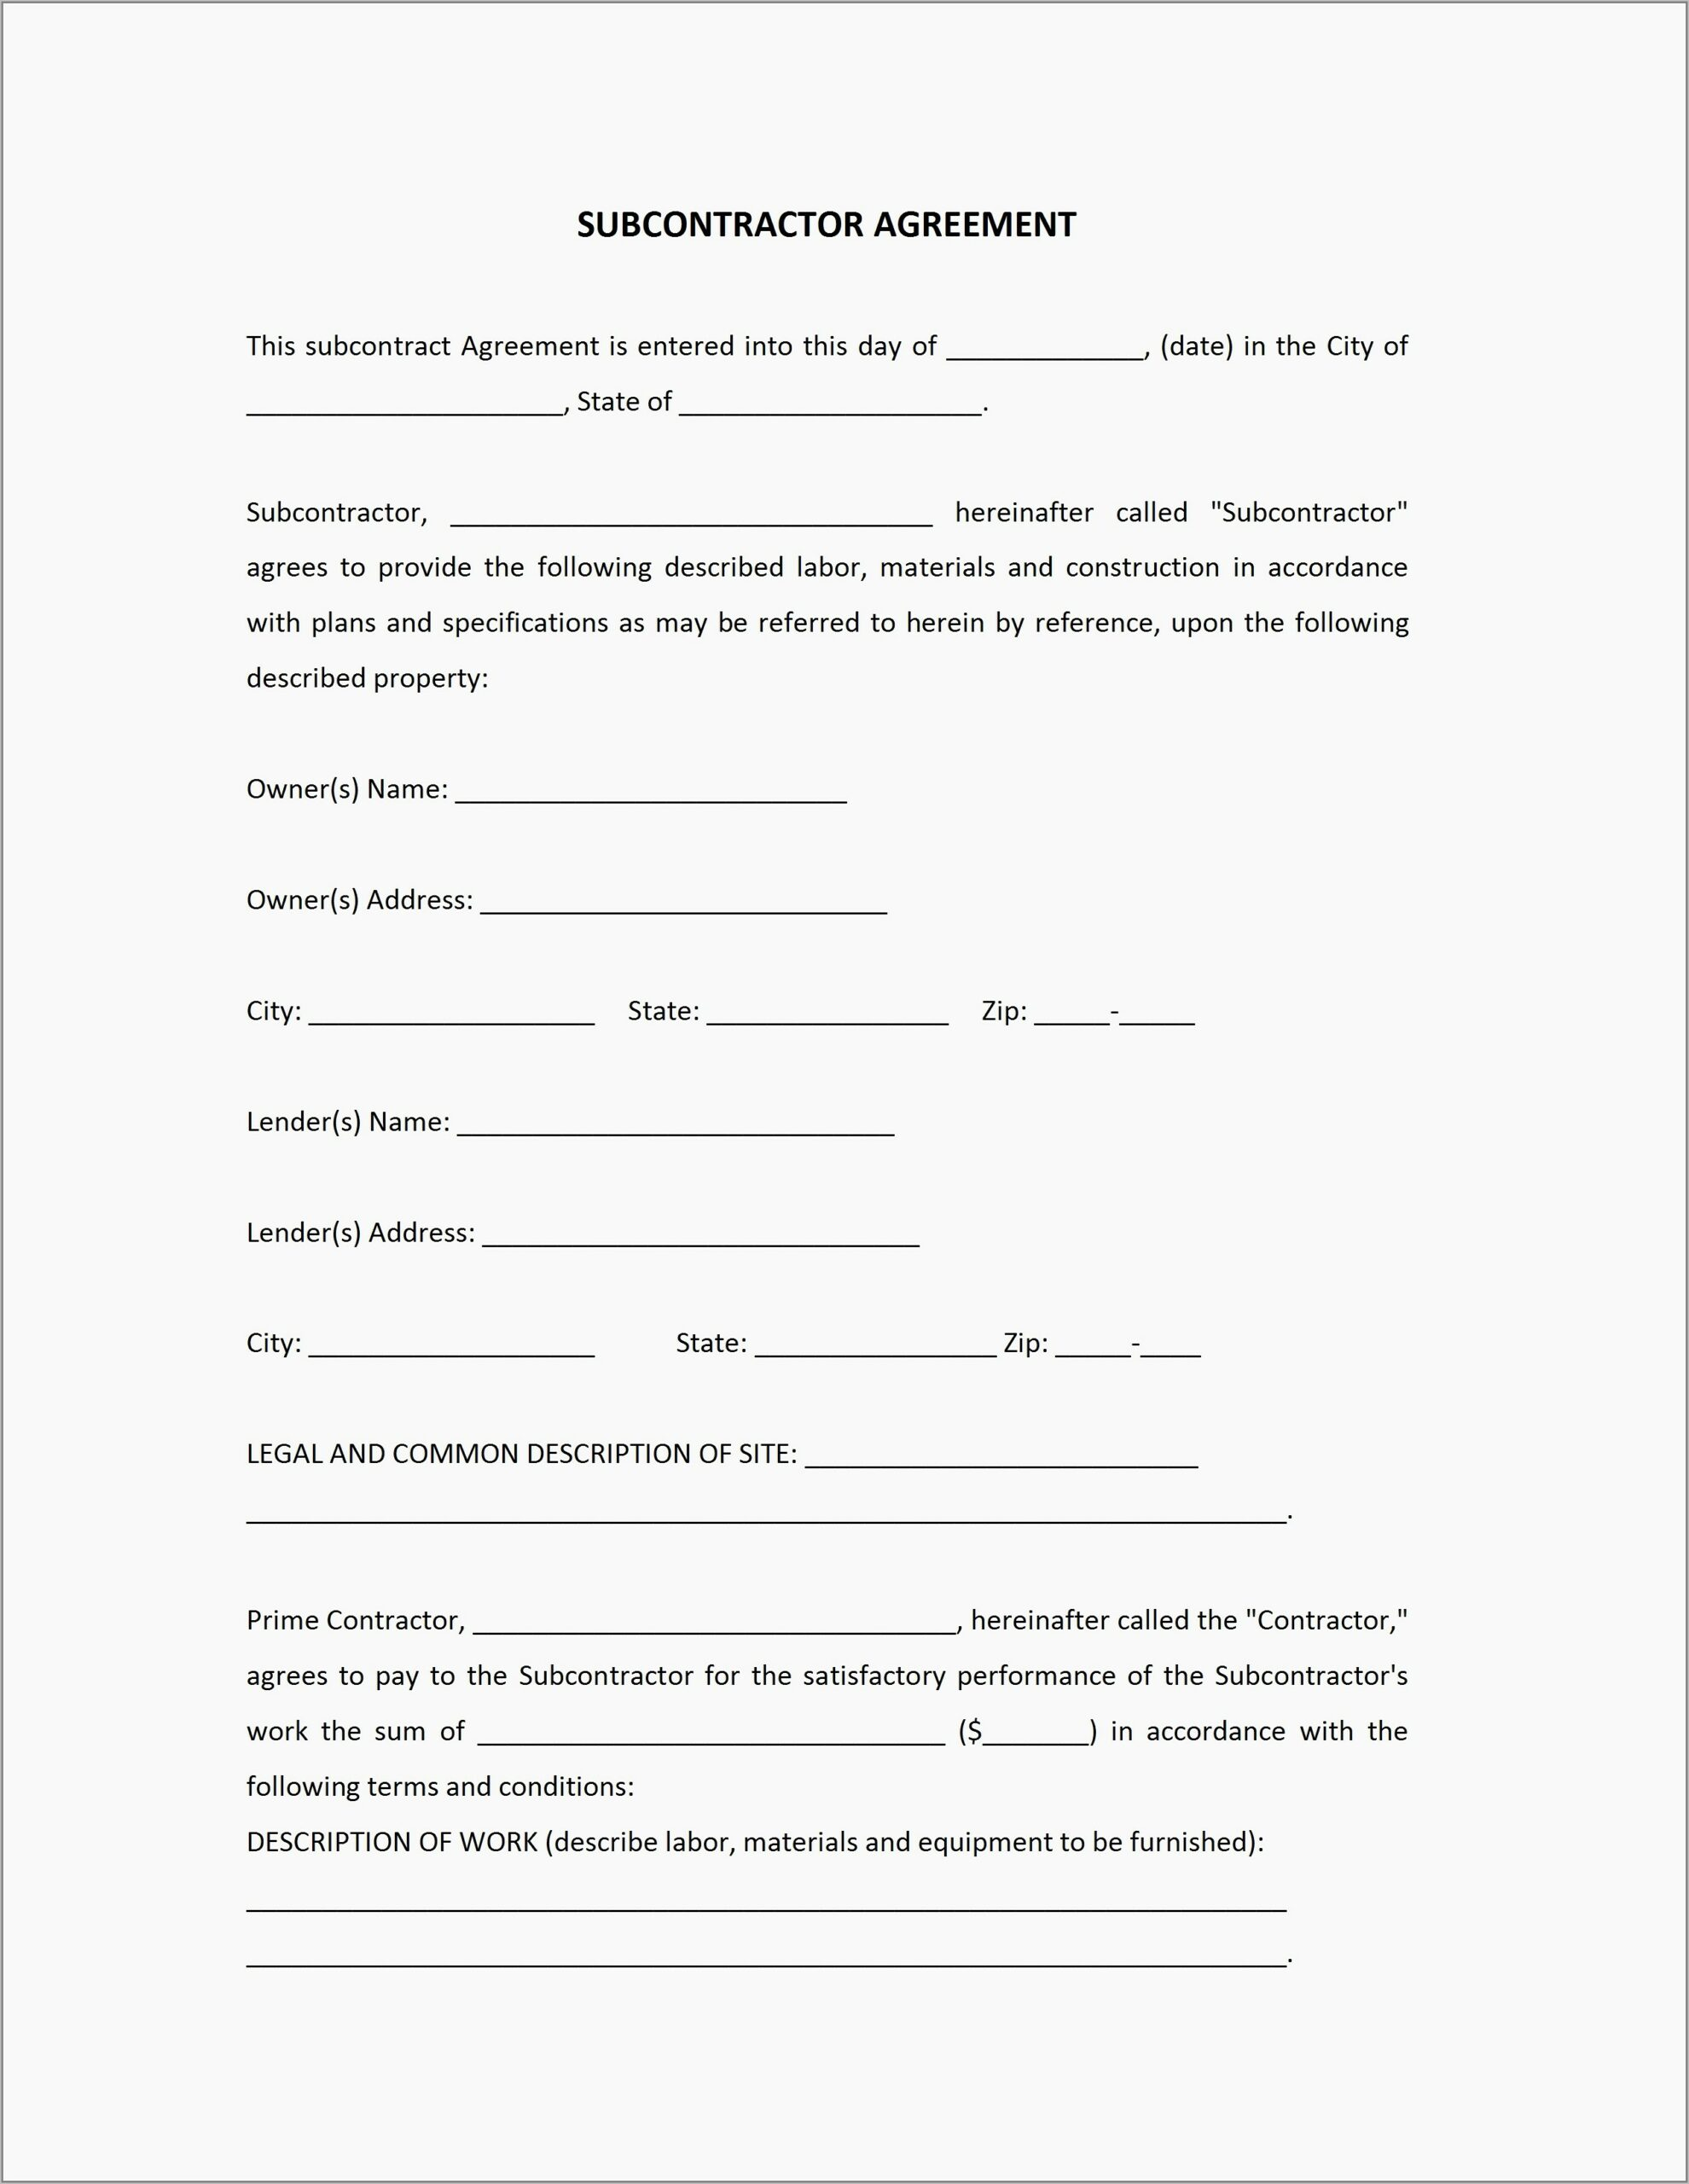 Subcontractor Agreement Template Uk Free